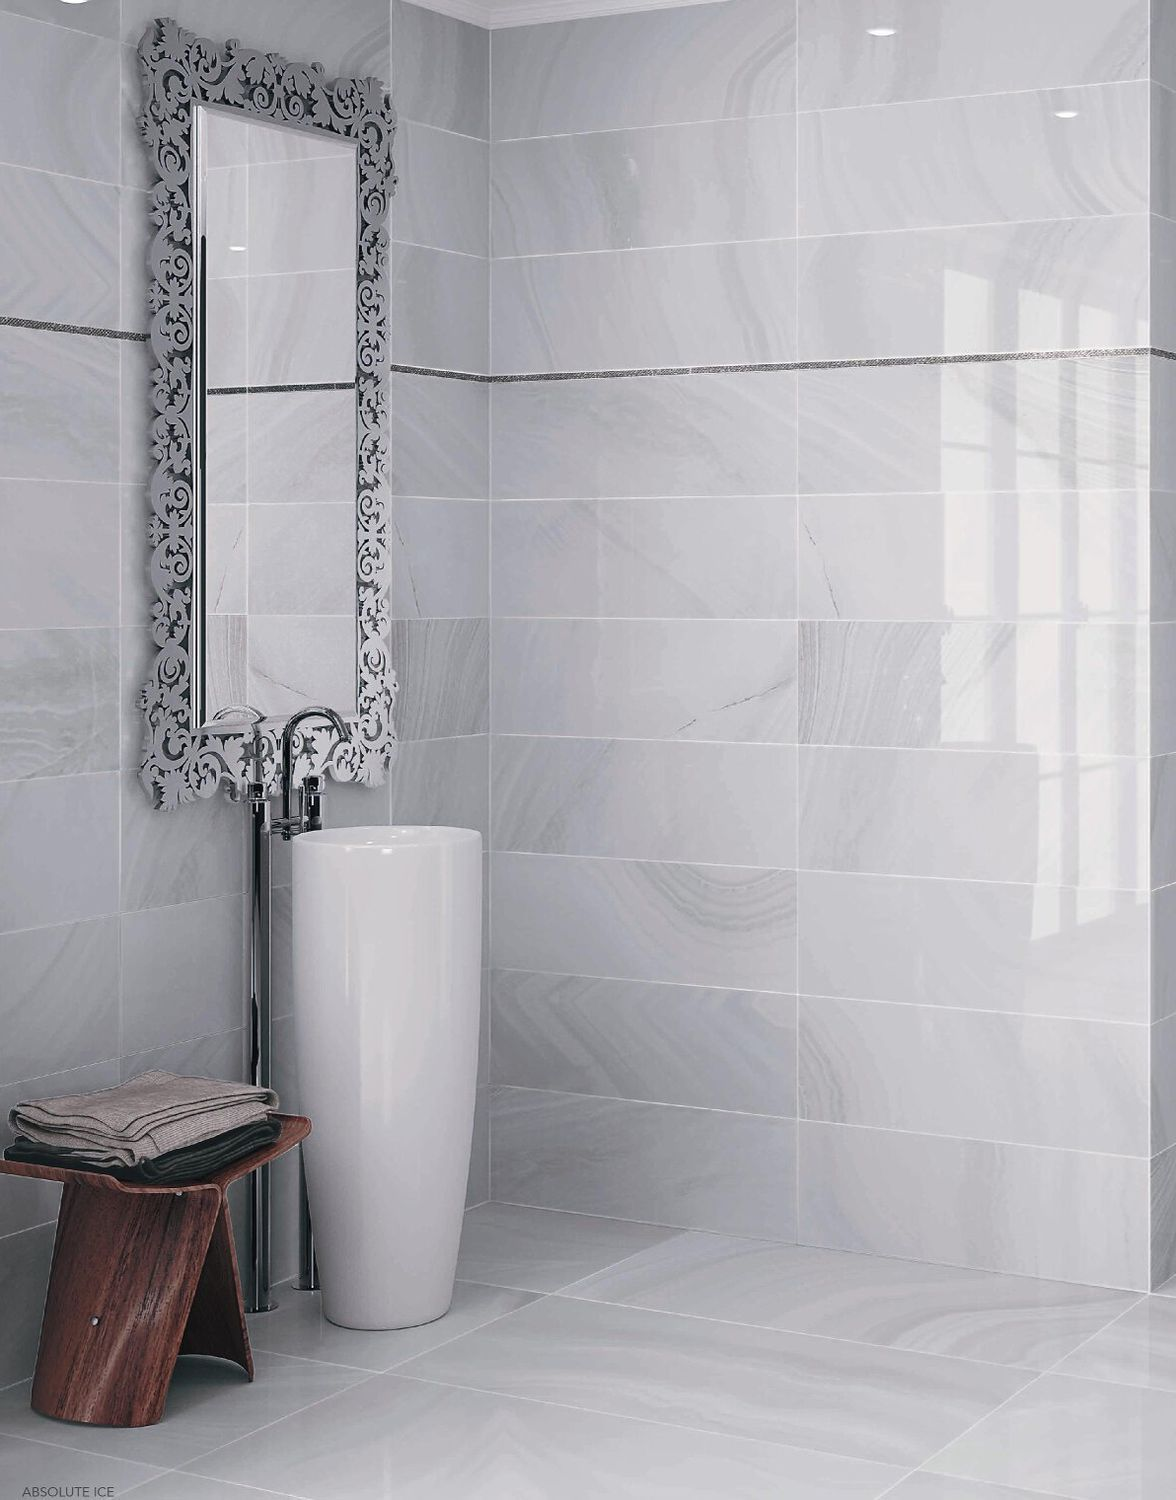 White Bathroom Tiles. Keep Bathroom Tile Grout White For Longer ...